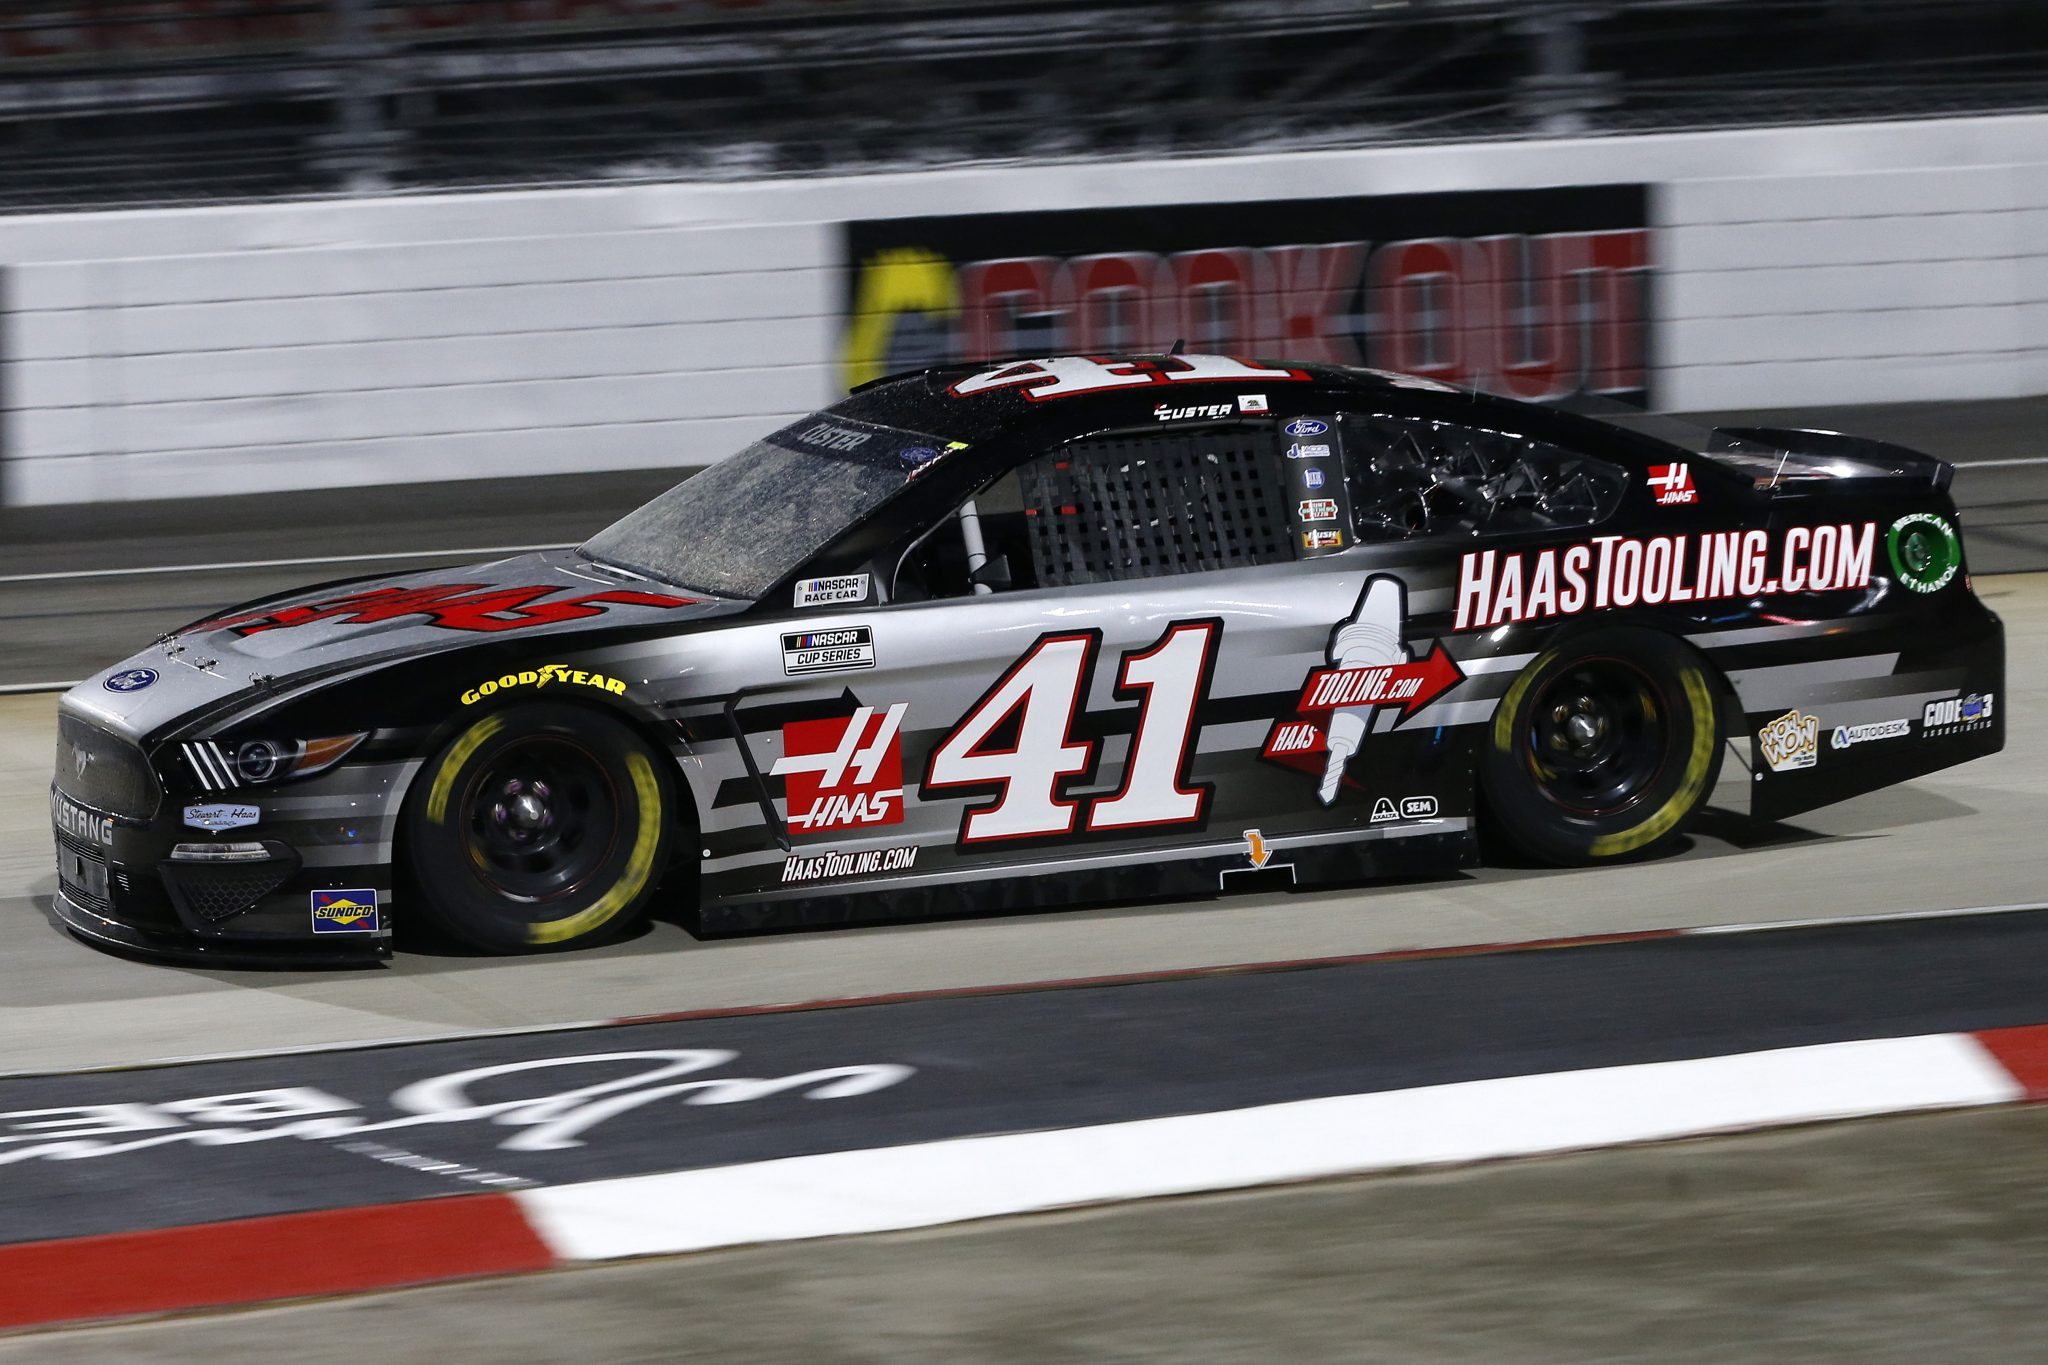 MARTINSVILLE, VIRGINIA - APRIL 10: Cole Custer, driver of the #41 HaasTooling.com Ford, drives during the NASCAR Cup Series Blue-Emu Maximum Pain Relief 500 at Martinsville Speedway on April 10, 2021 in Martinsville, Virginia. (Photo by Brian Lawdermilk/Getty Images) | Getty Images